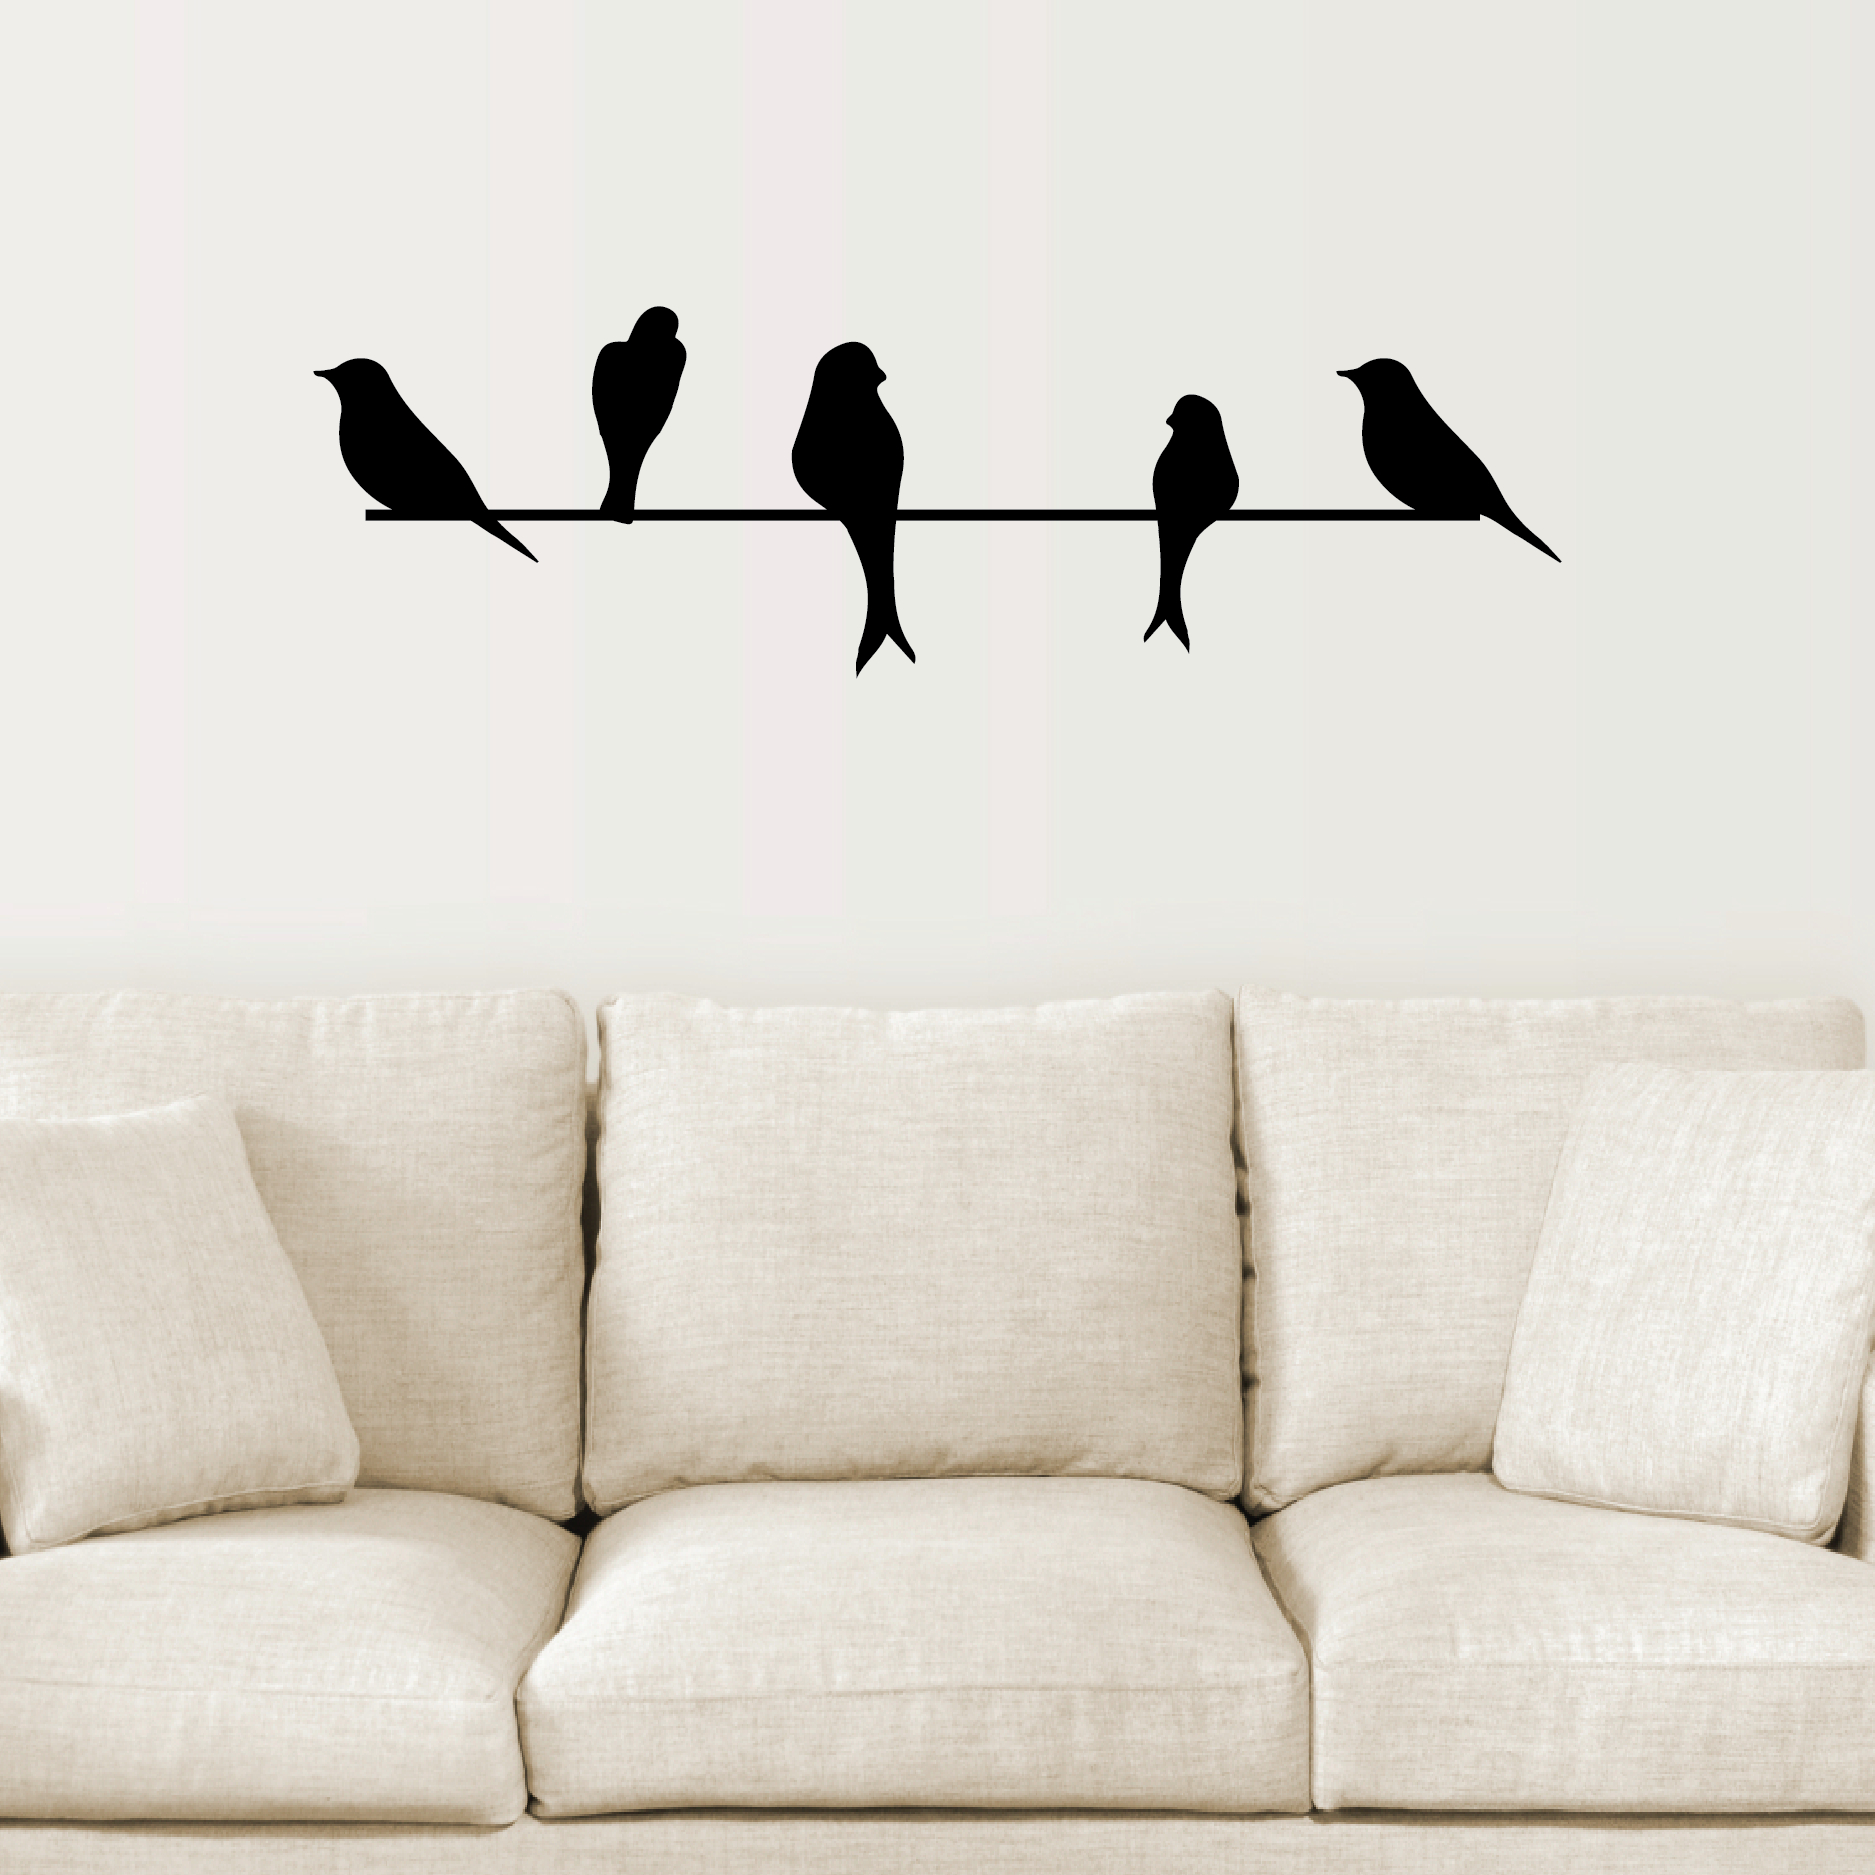 Birds On A Wire Wall Quotes™ Wall Art Decal | Wallquotes With Regard To Birds On A Wire Wall Decor (View 2 of 30)